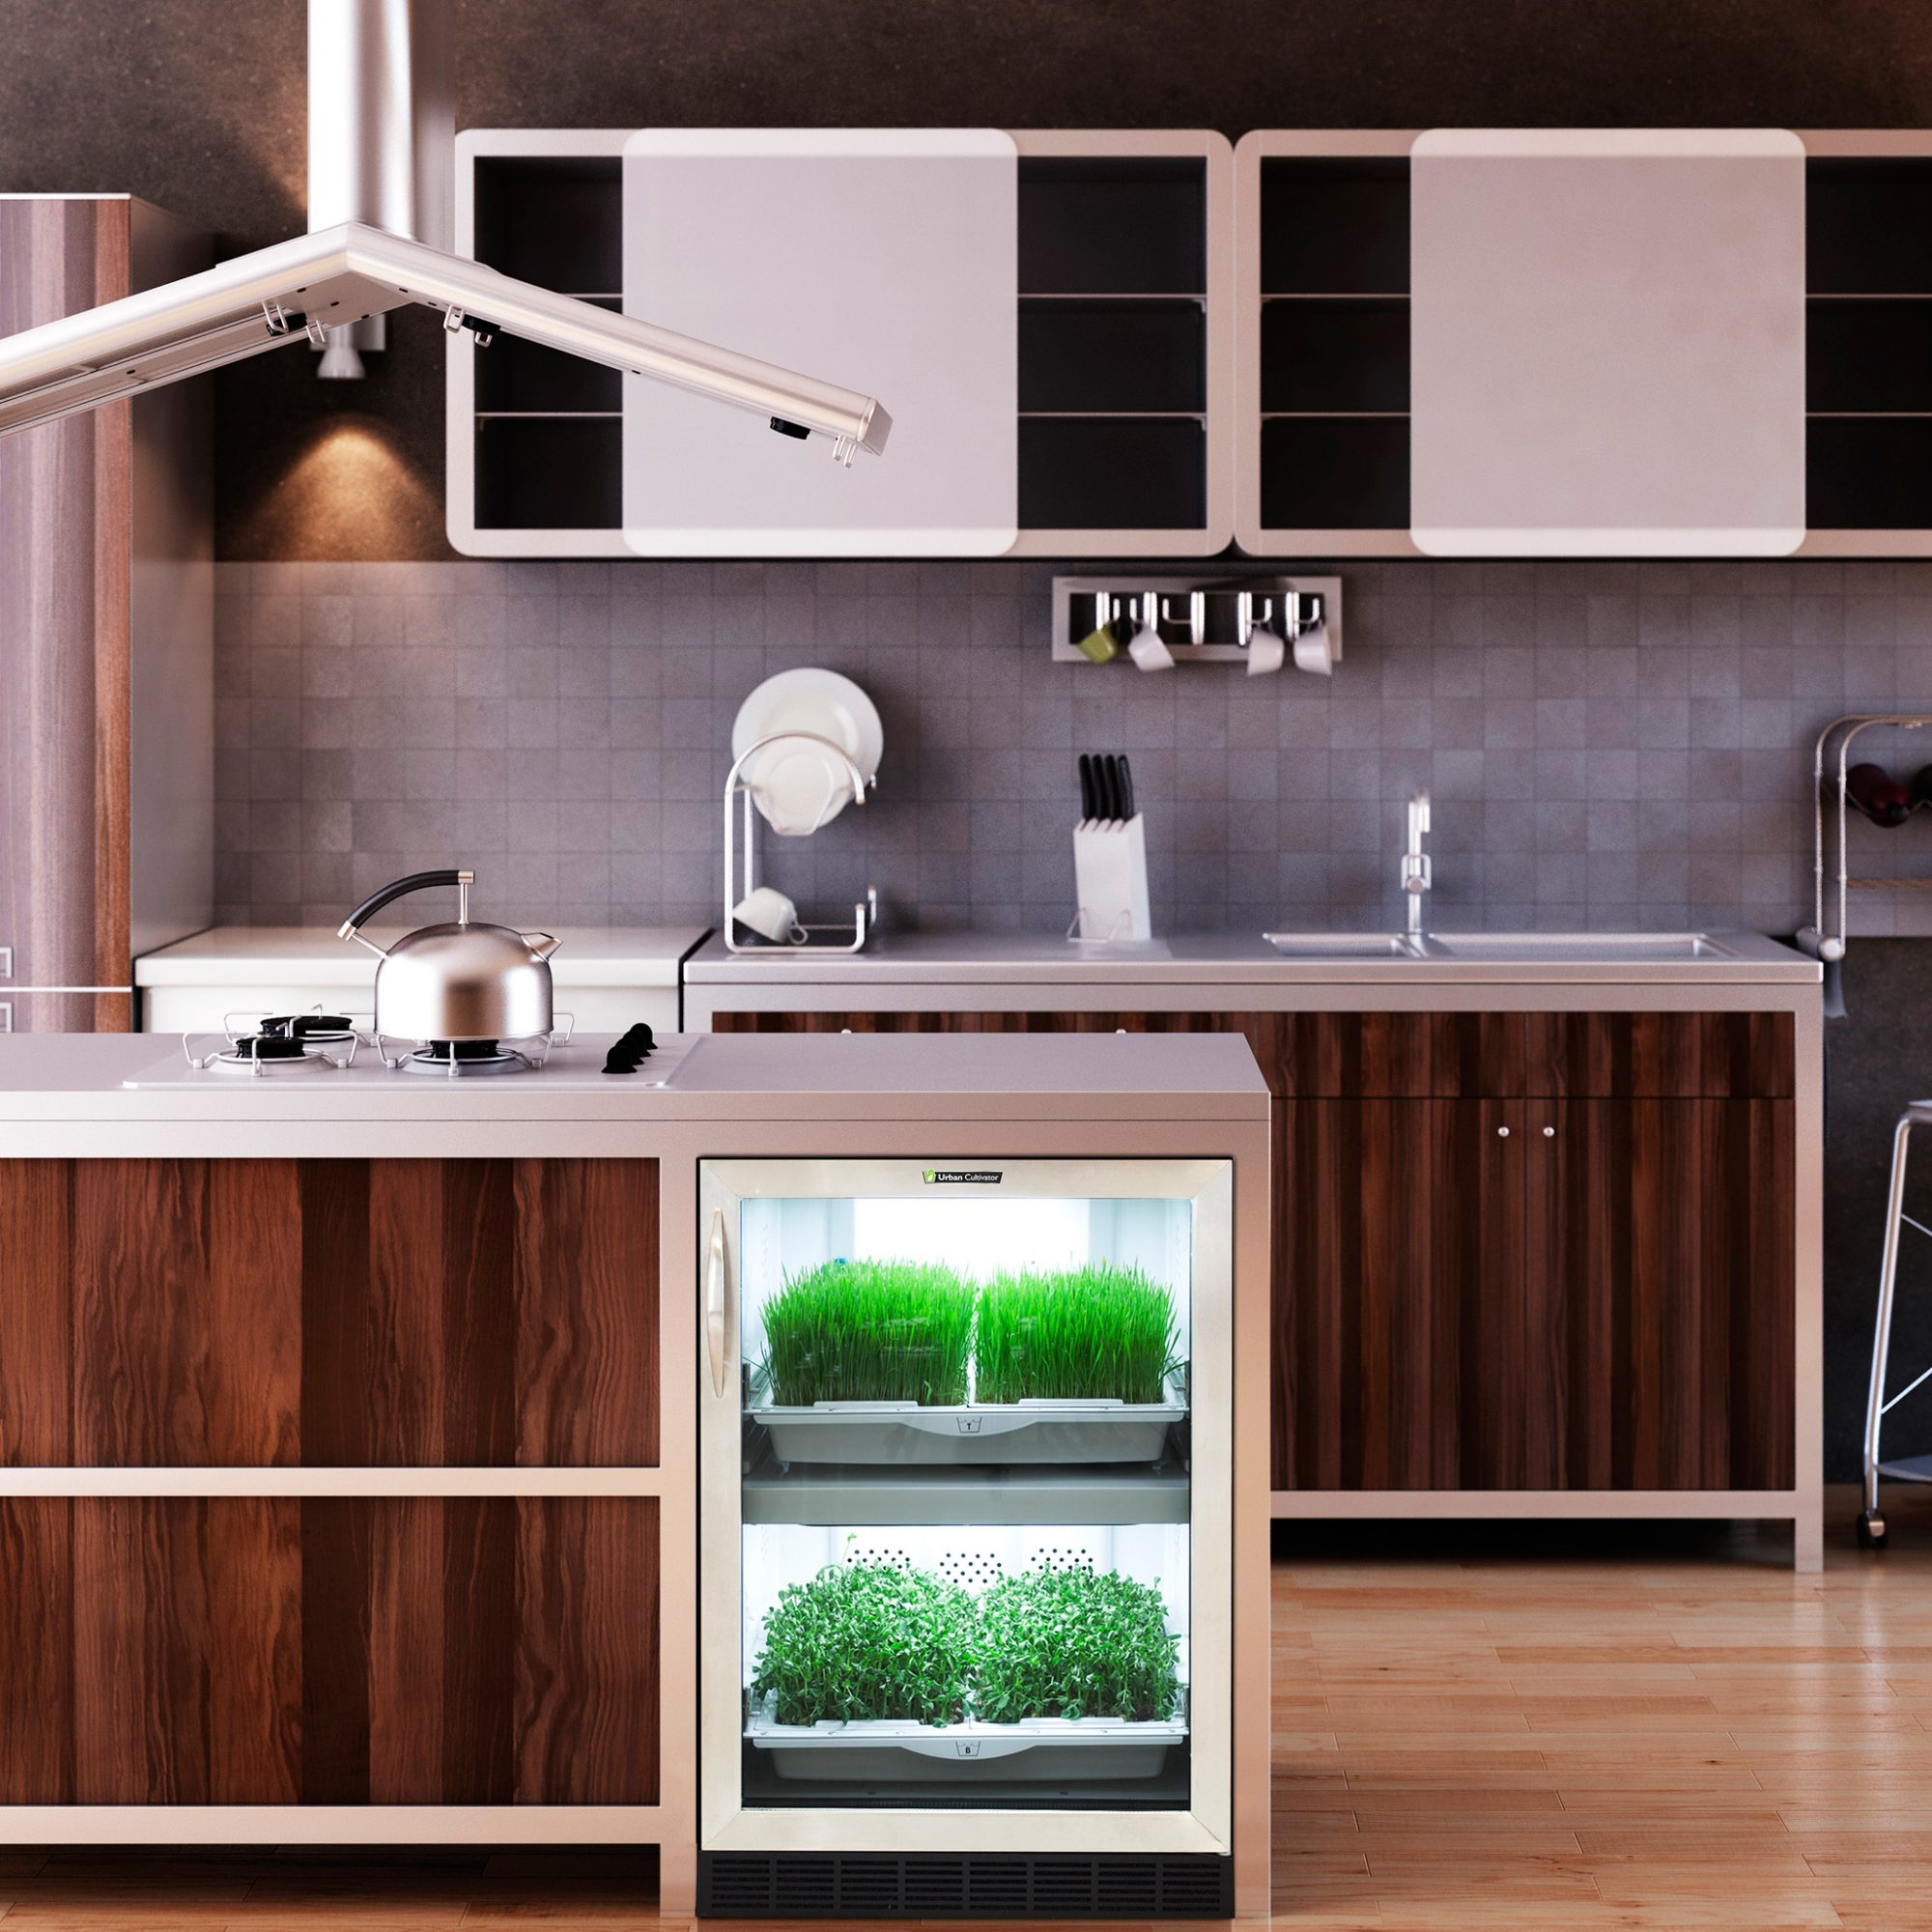 FWX A TINY GREENHOUSE THAT FITS IN YOUR KITCHEN URBAN CULTIVATOR EXAMPLE